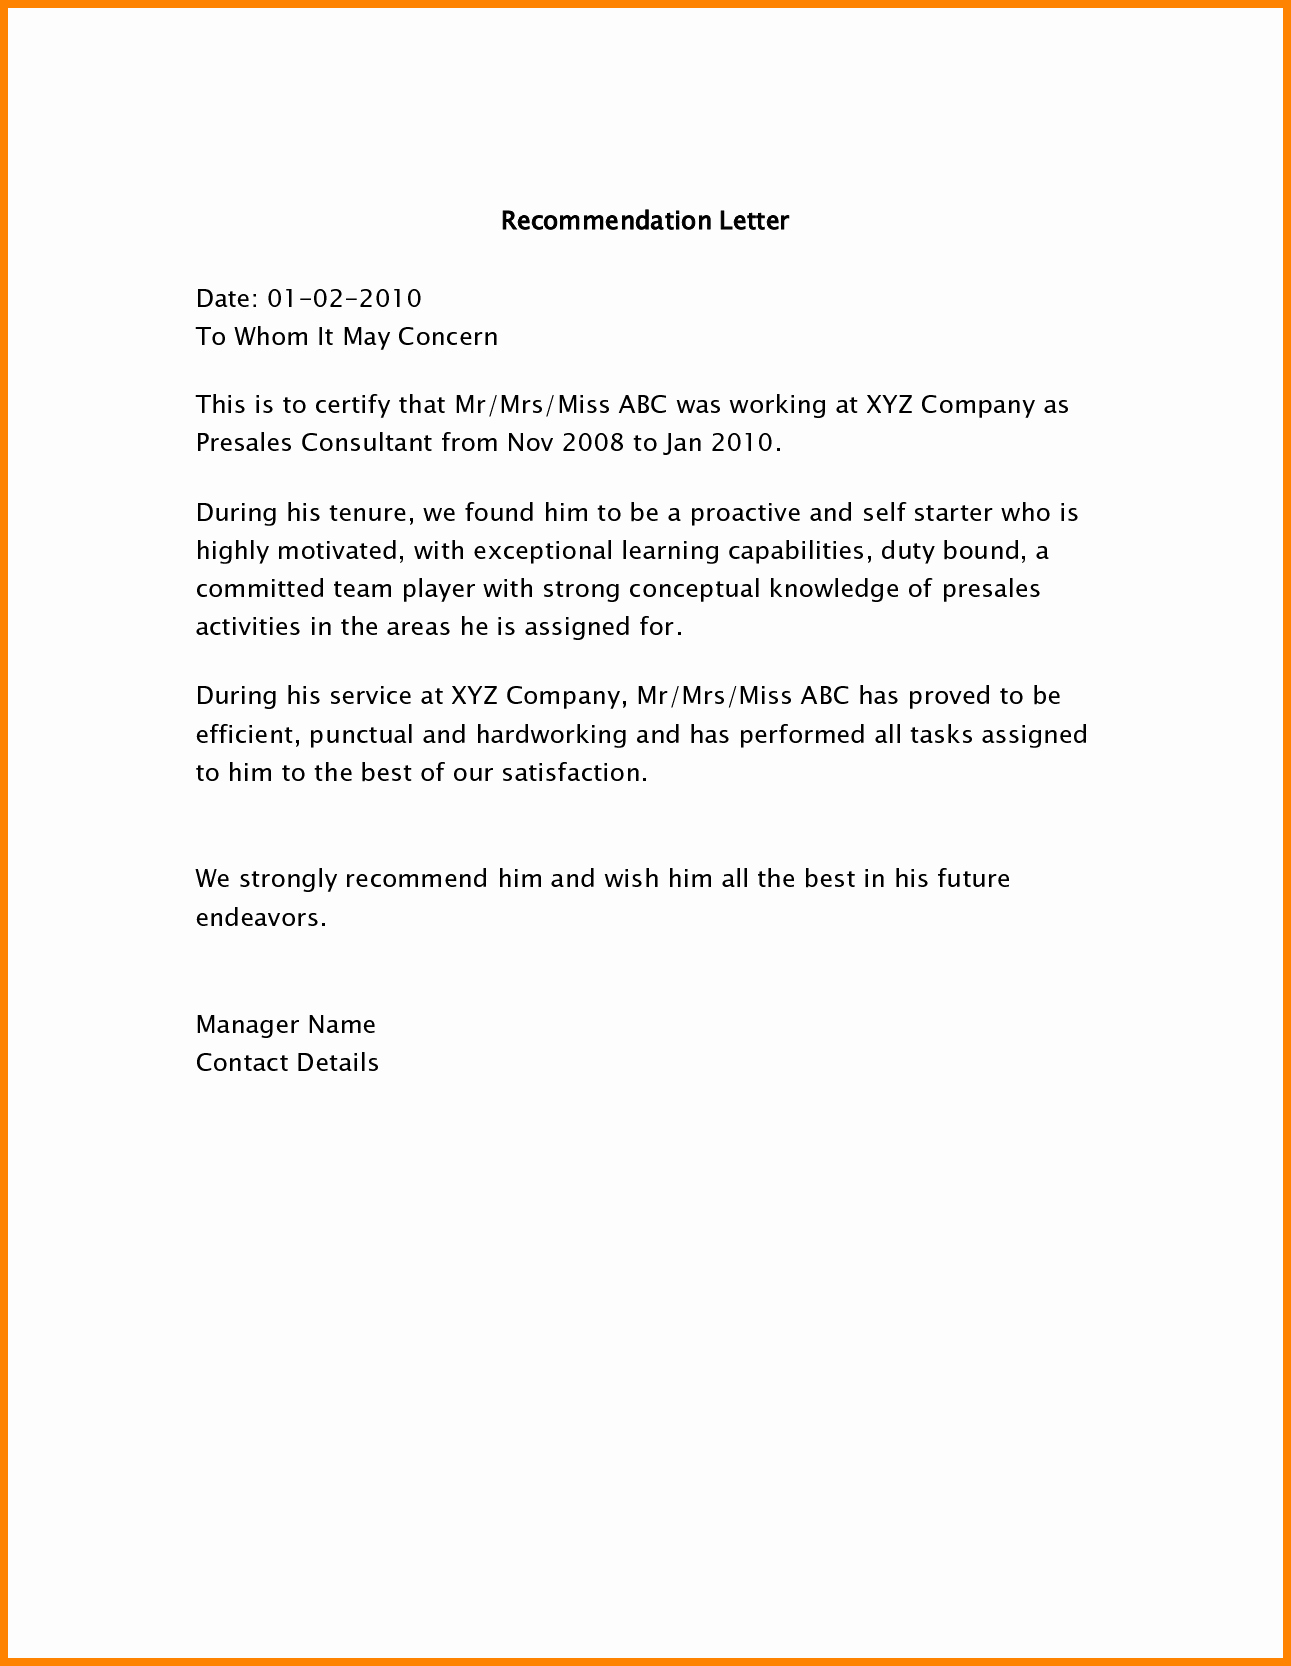 Employee Recommendation Letter Example Fresh 5 Employee Re Mendation Letter Samples